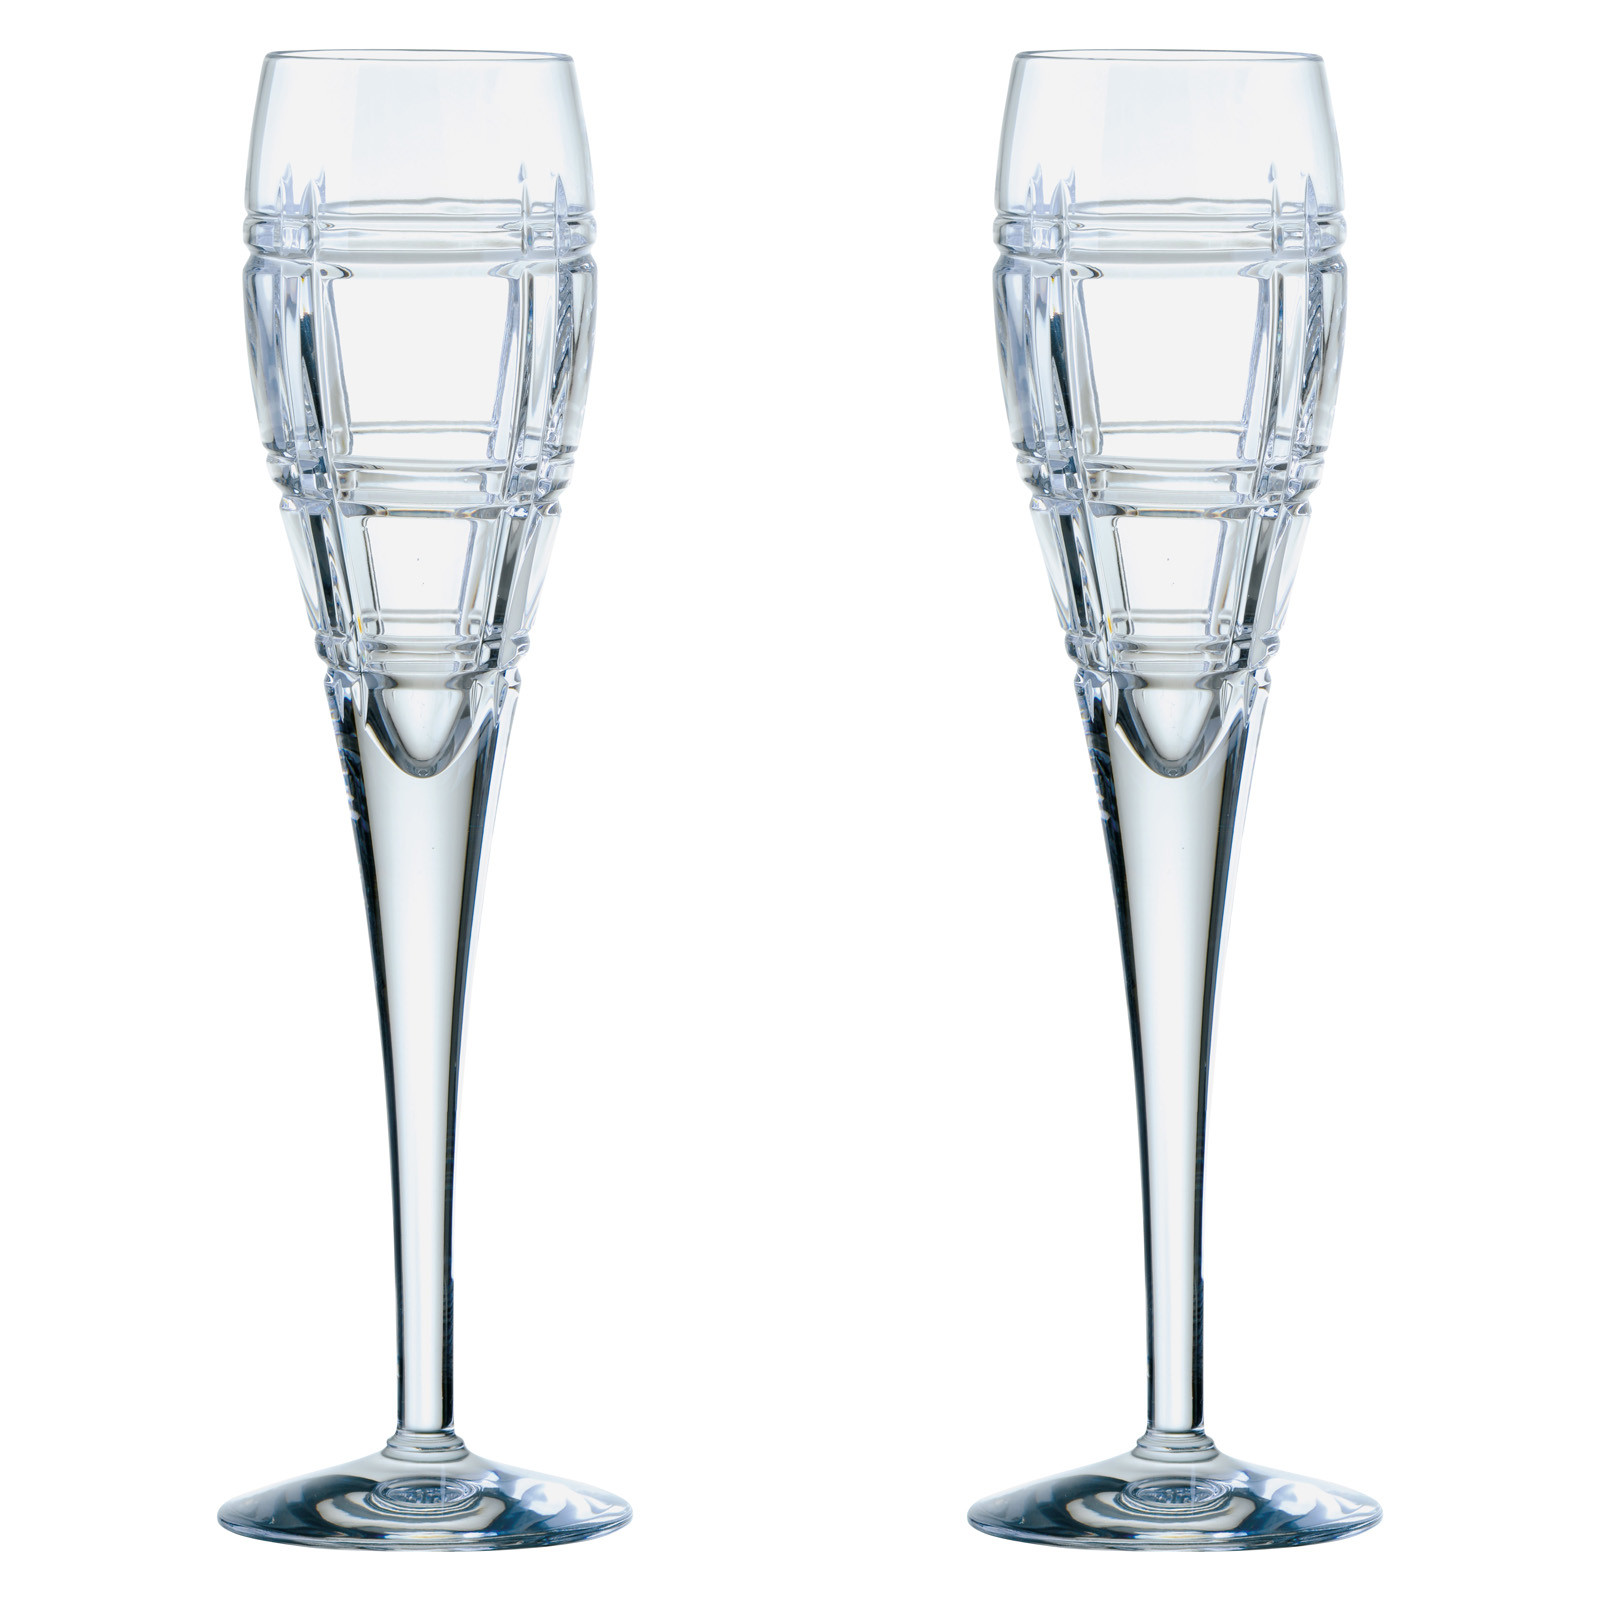 24 Best Big Champagne Glass Vase 2021 free download big champagne glass vase of celebrate with champagne not just jugs with set of 2 latitude champagne flutes